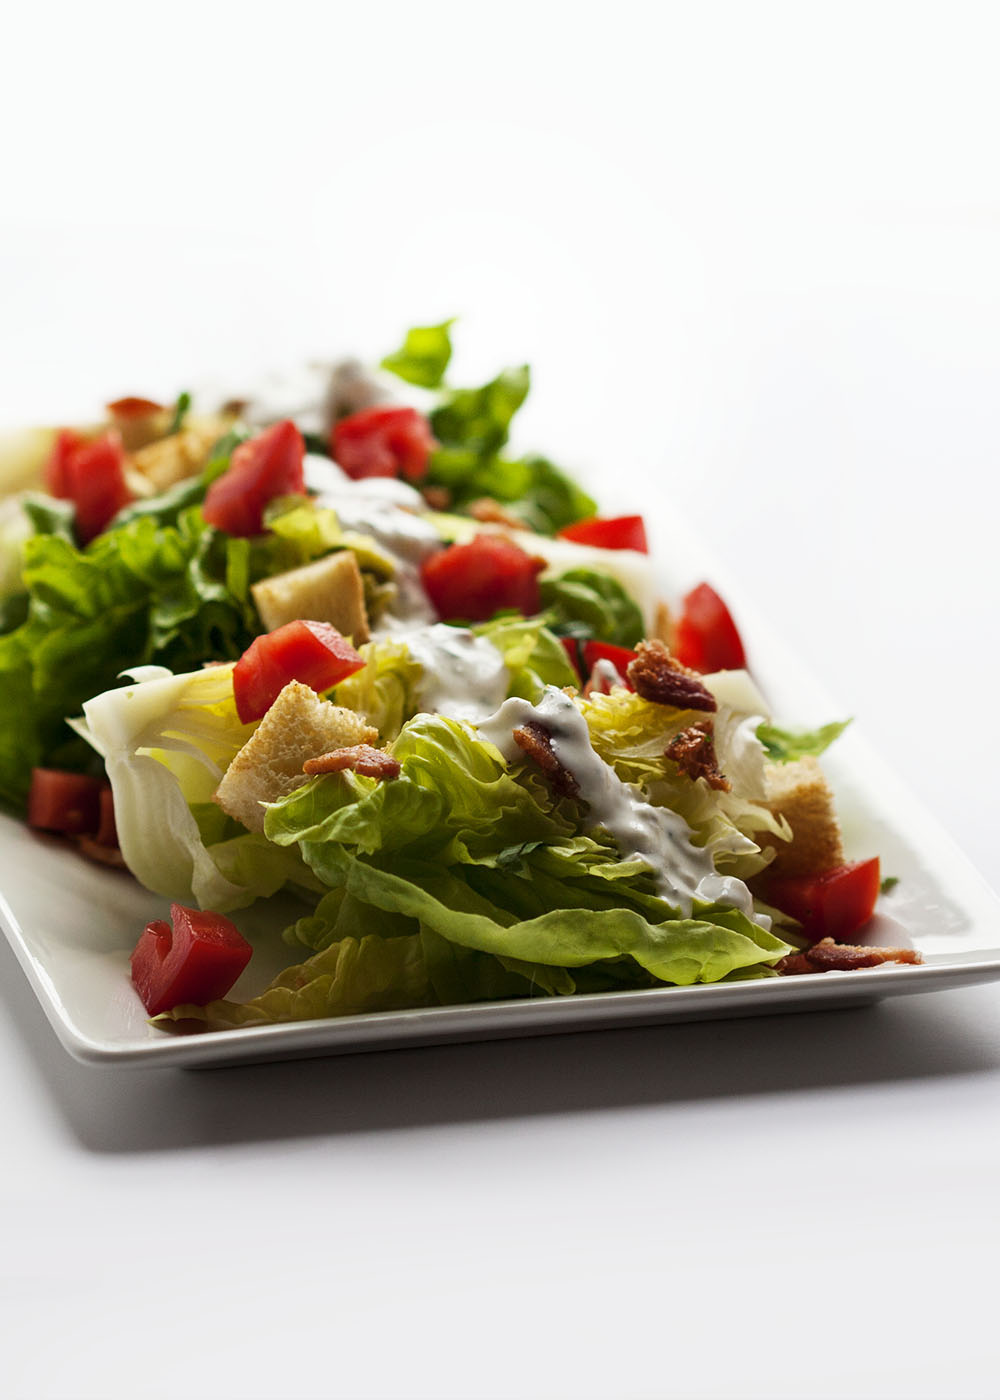 Blue Cheese and Bacon Wedge Salad - Creamy blue cheese, crispy bacon, and ripe tomatoes combine with tender lettuce in this version of the classic salad.   justalittlebitofbacon.com